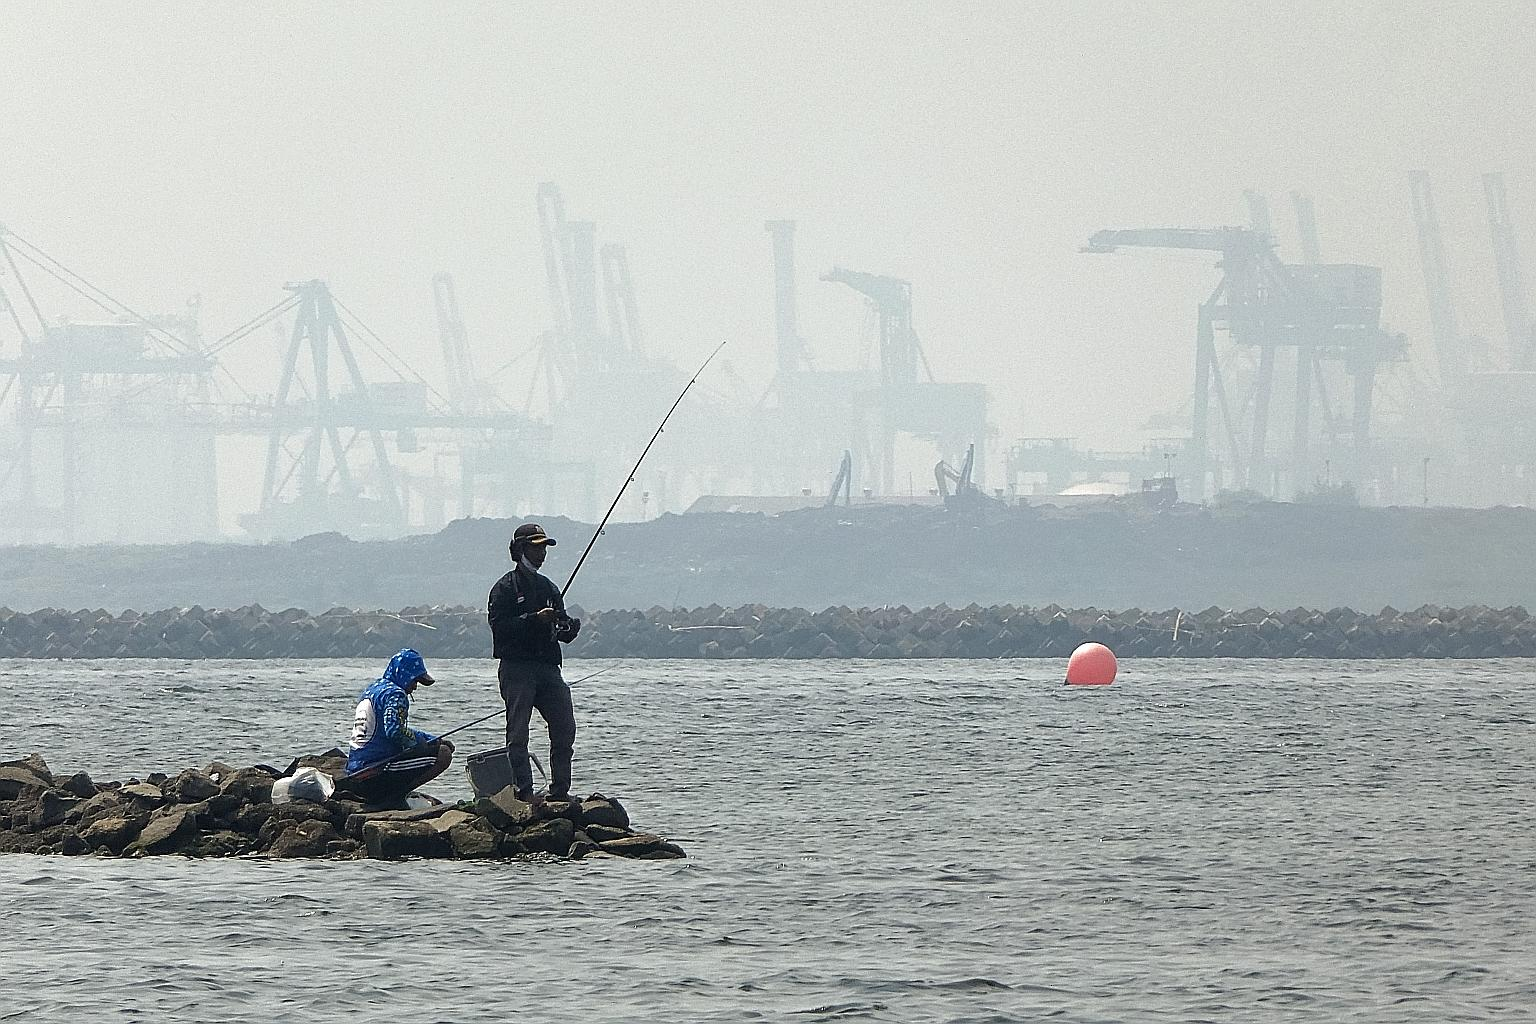 A coastal area of Jakarta shrouded in thick haze last month. If a haze crisis occurs while South-east Asia and the world are still fighting the pandemic, it would compound the strain on public health resources, the writers say, stressing the need to